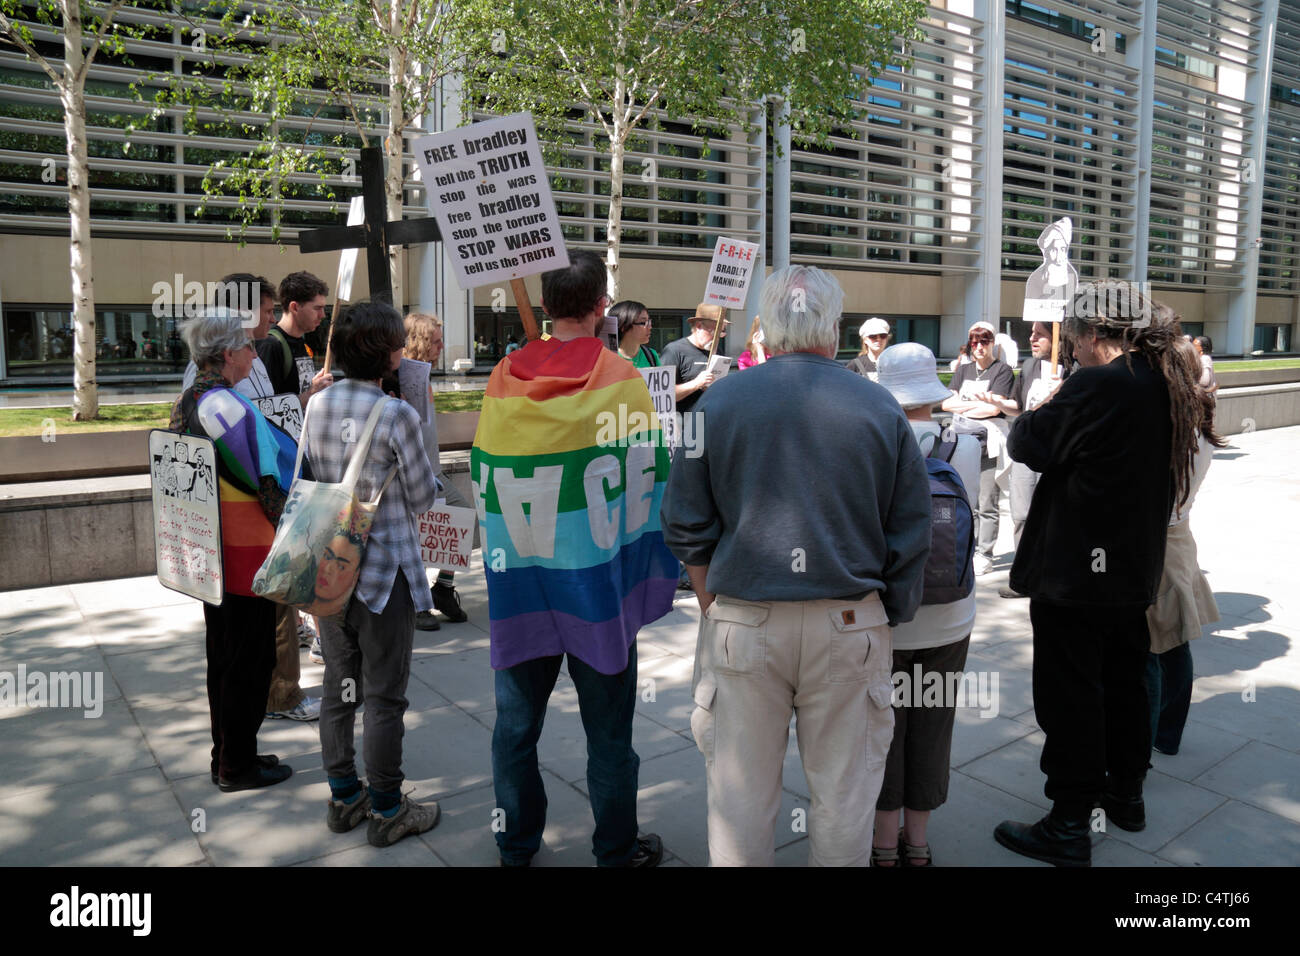 A protest for Bradley Manning (leaked Iraq info to Wikileaks in 2010) outside the Home Office, Marsham Street, London. - Stock Image